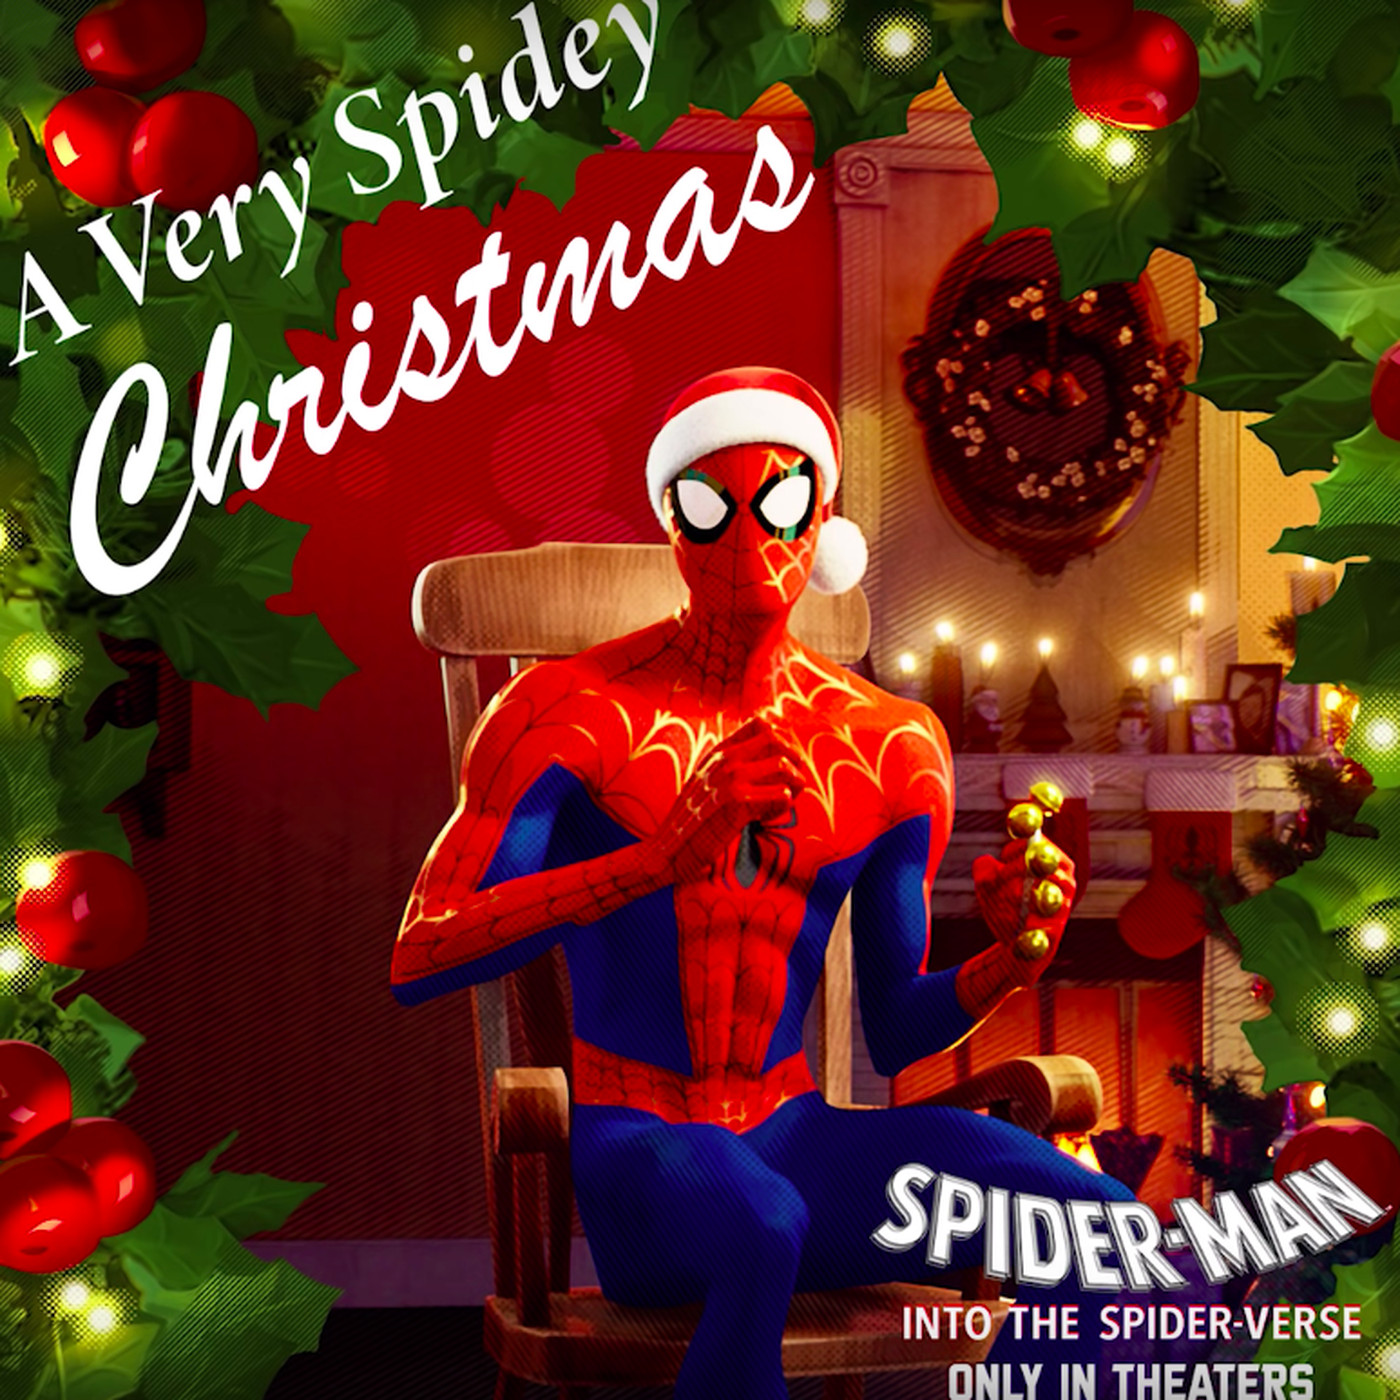 Into the Spider-Verse Christmas album is real and streamable